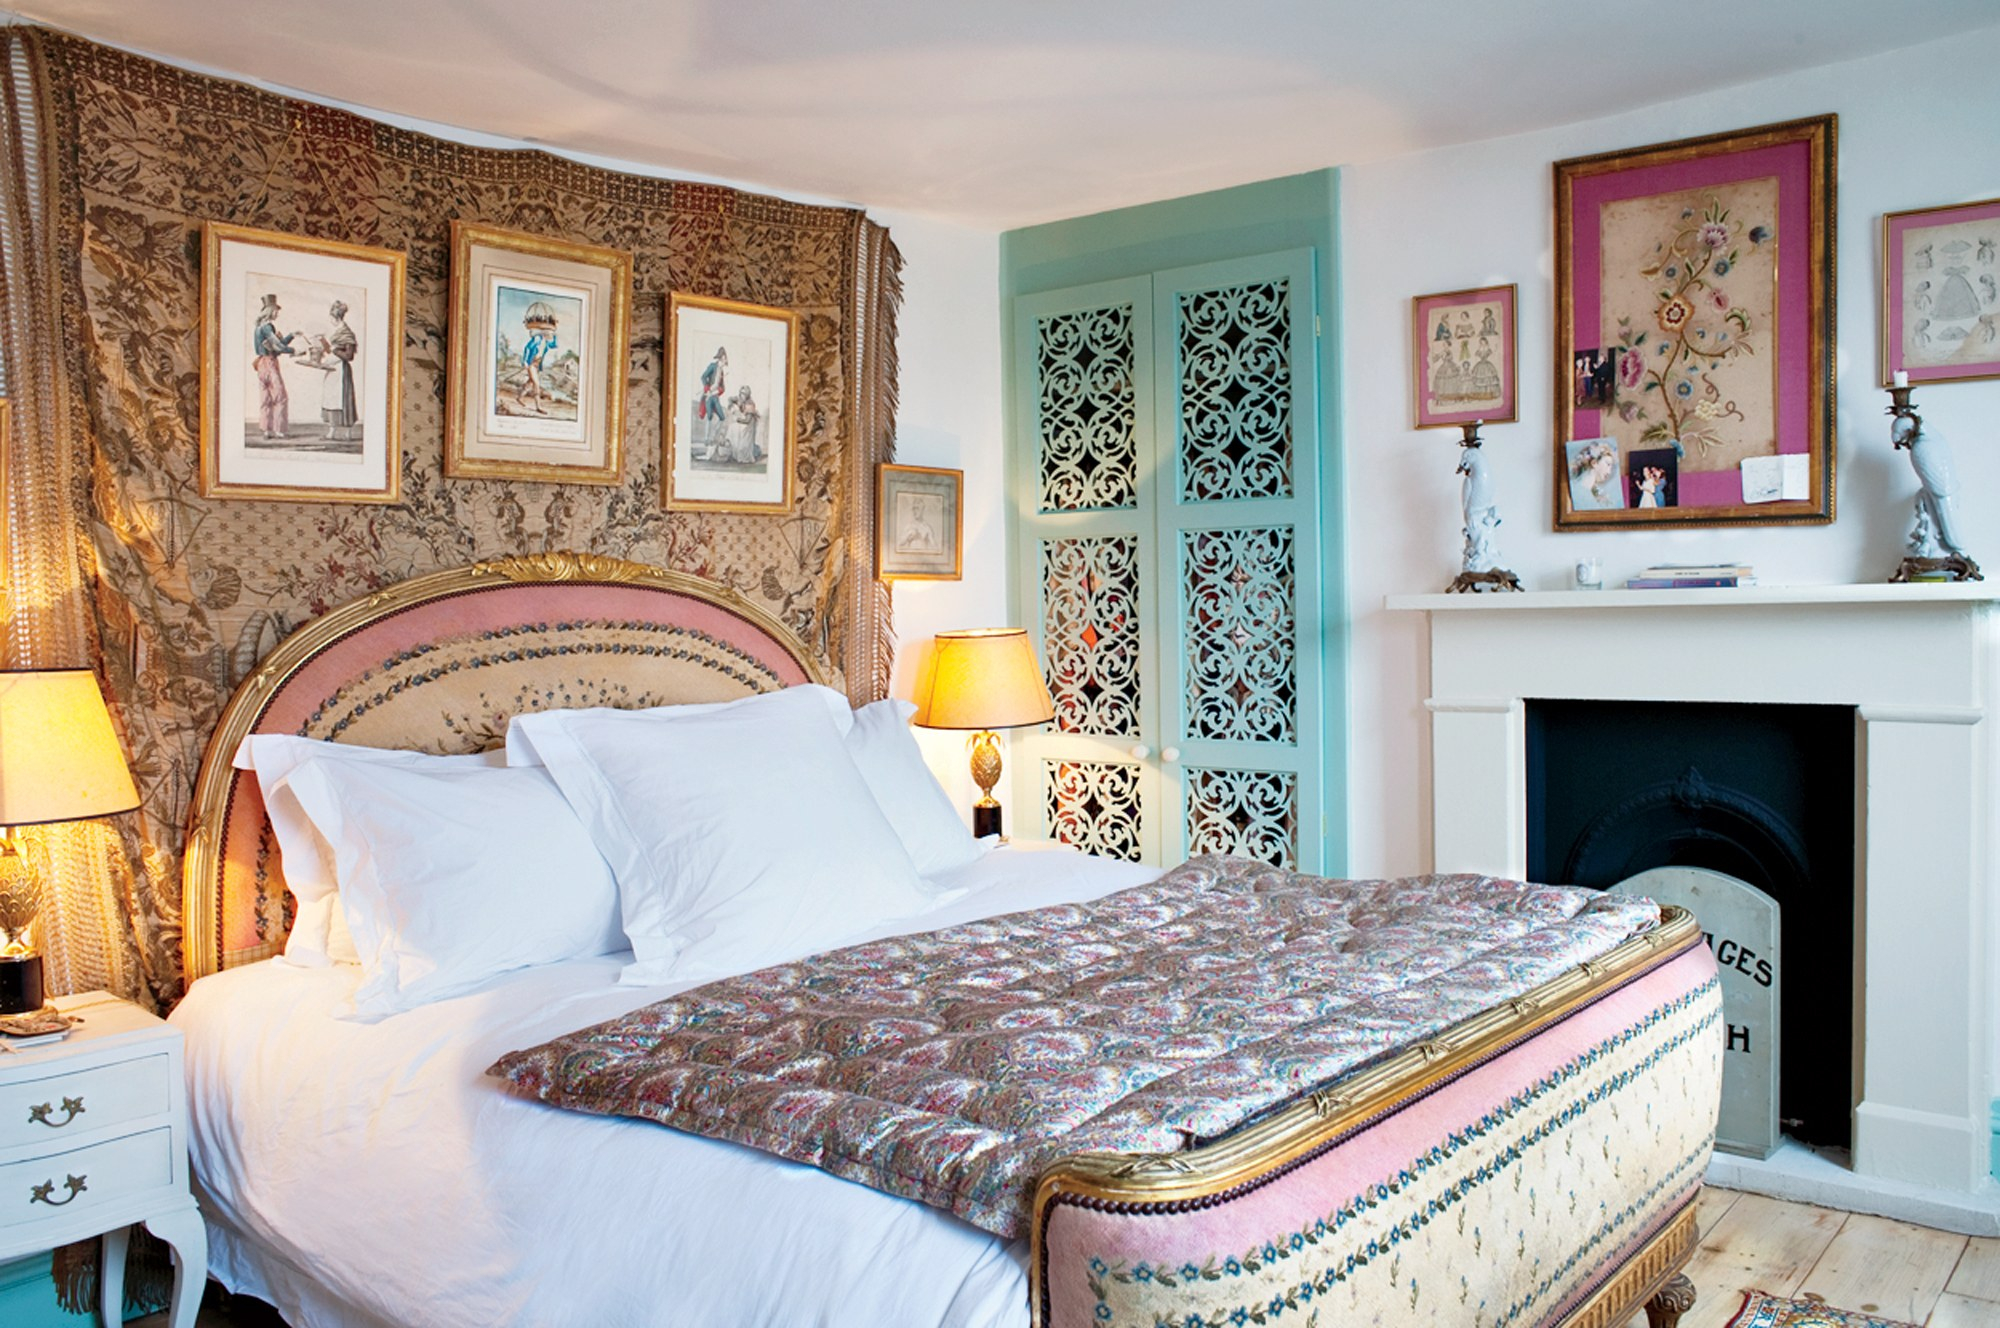 Amazing The Most Beautiful Bedrooms In Vogue - Vogue with regard to Best of Most Beautiful Bedrooms